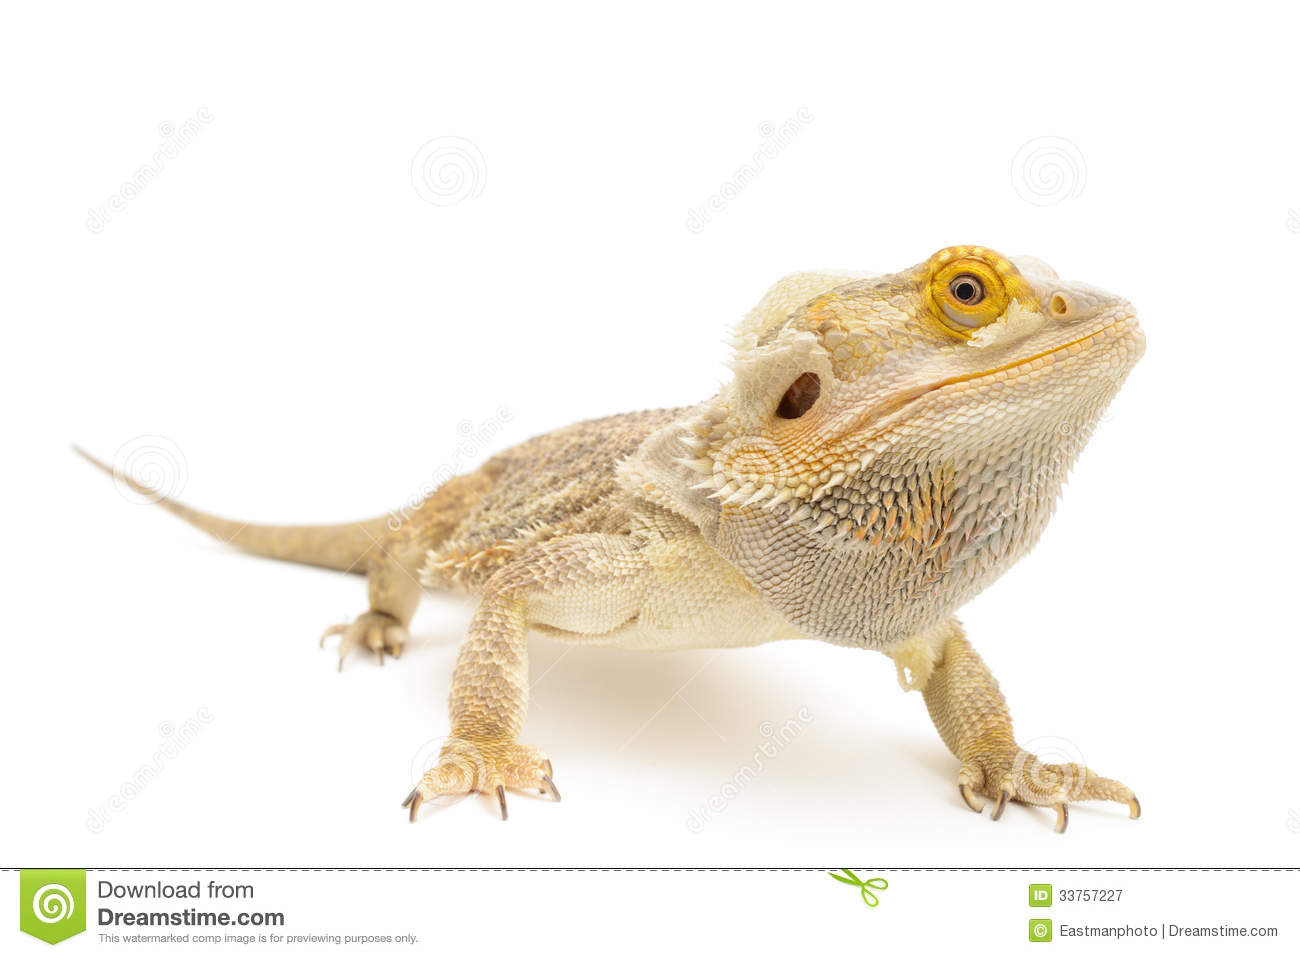 Bearded Dragon clipart #9, Download drawings